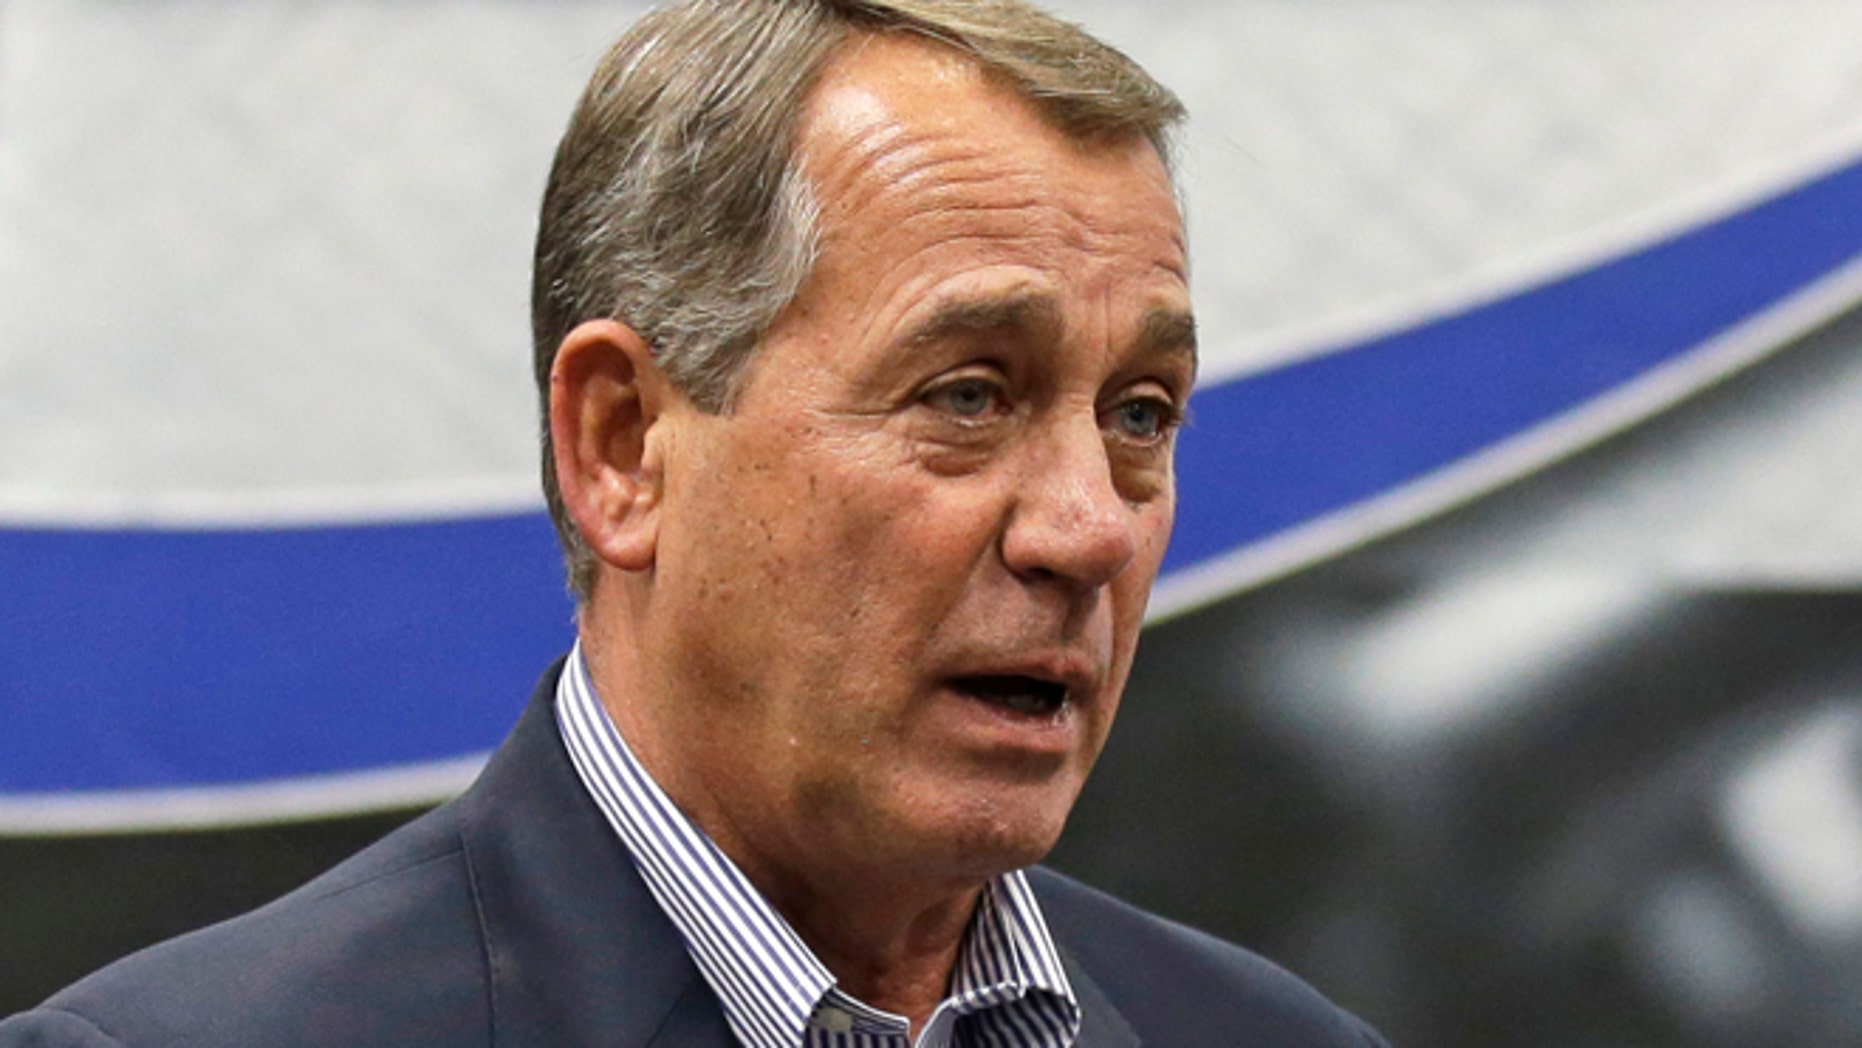 May 5, 2014: House Speaker John Boehner speaking to employees during a tour of the Machintek Corp. plant in Fairfield, Ohio.